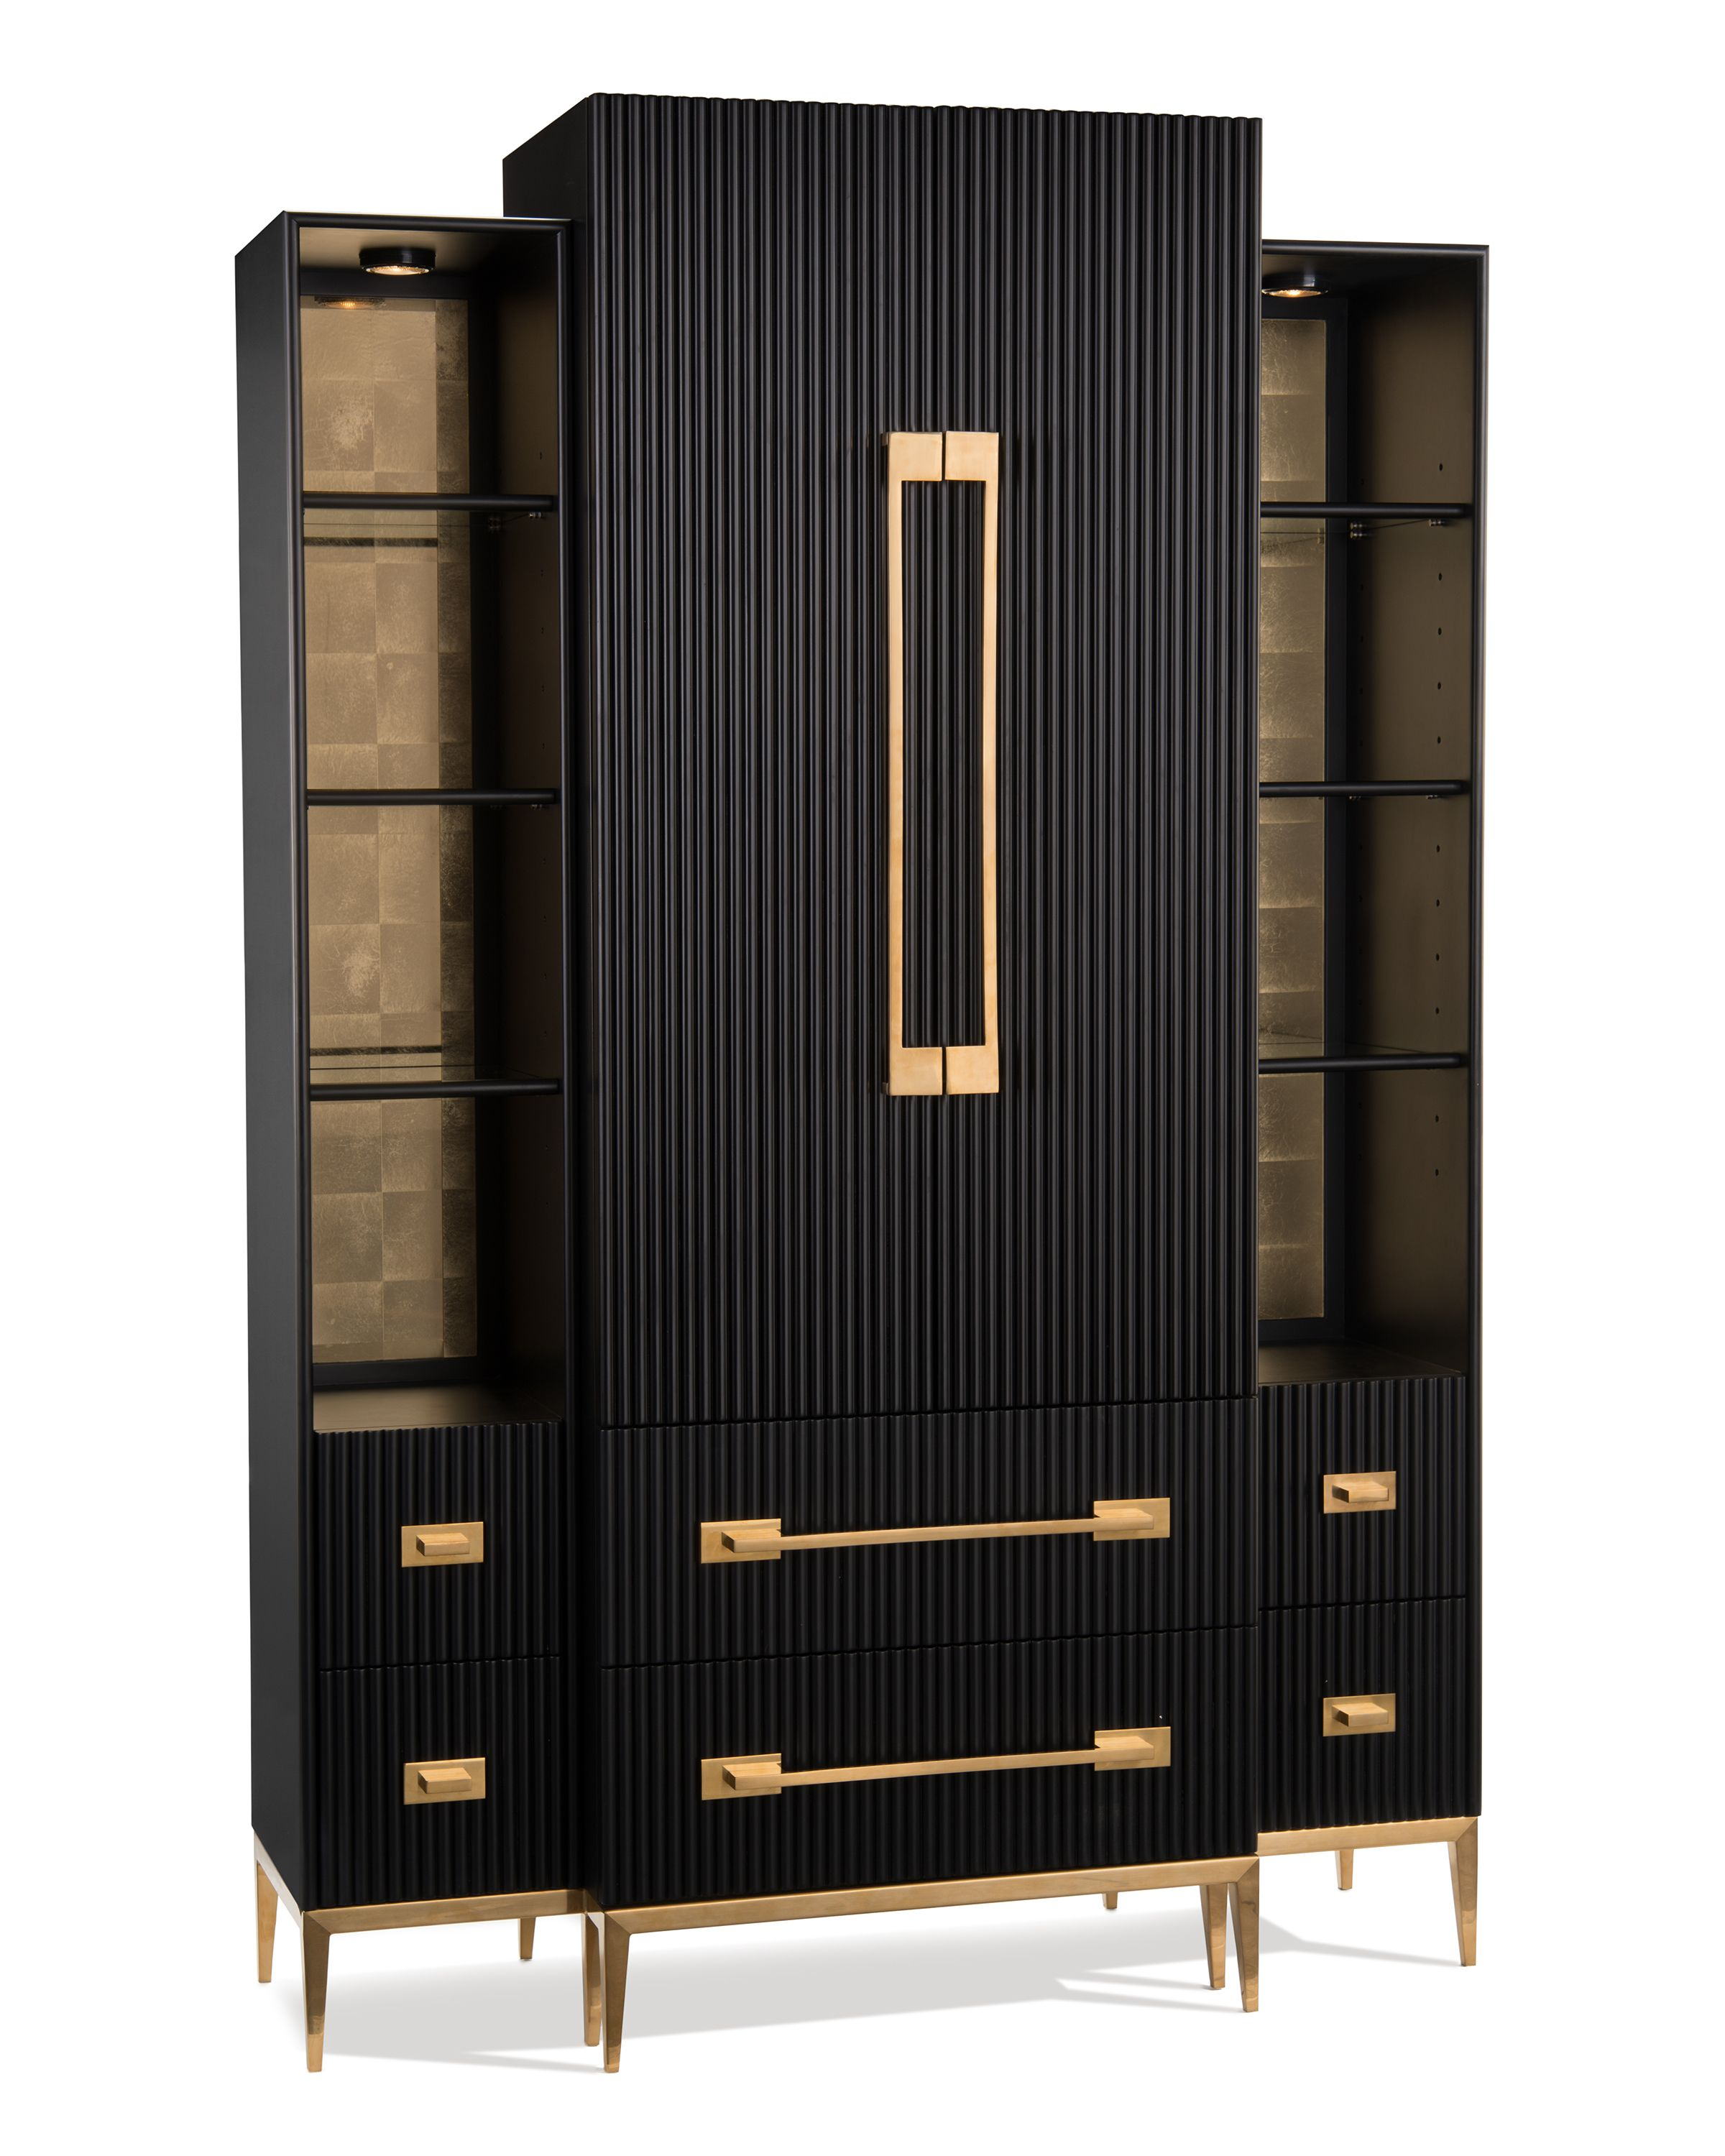 The black satin cabinet will debut at high point market this april